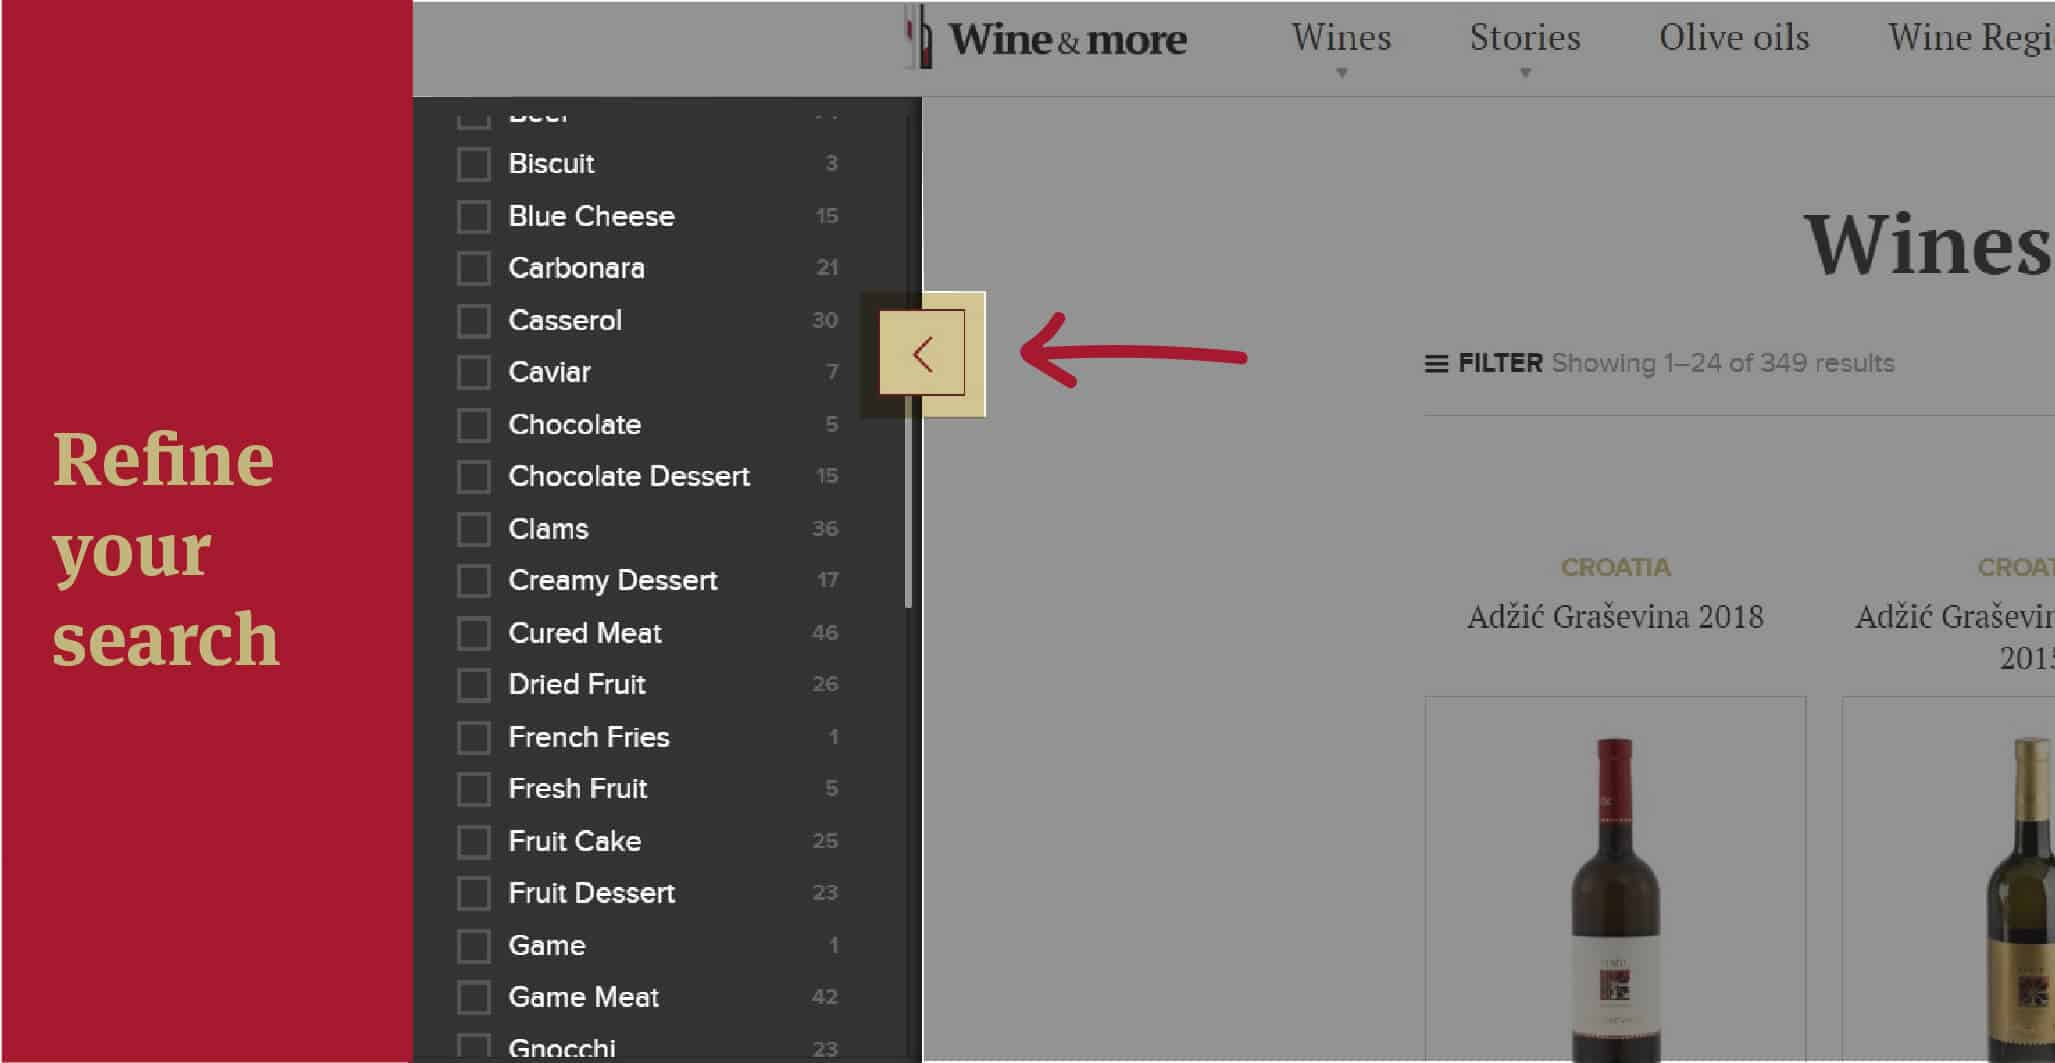 Refine your wine search